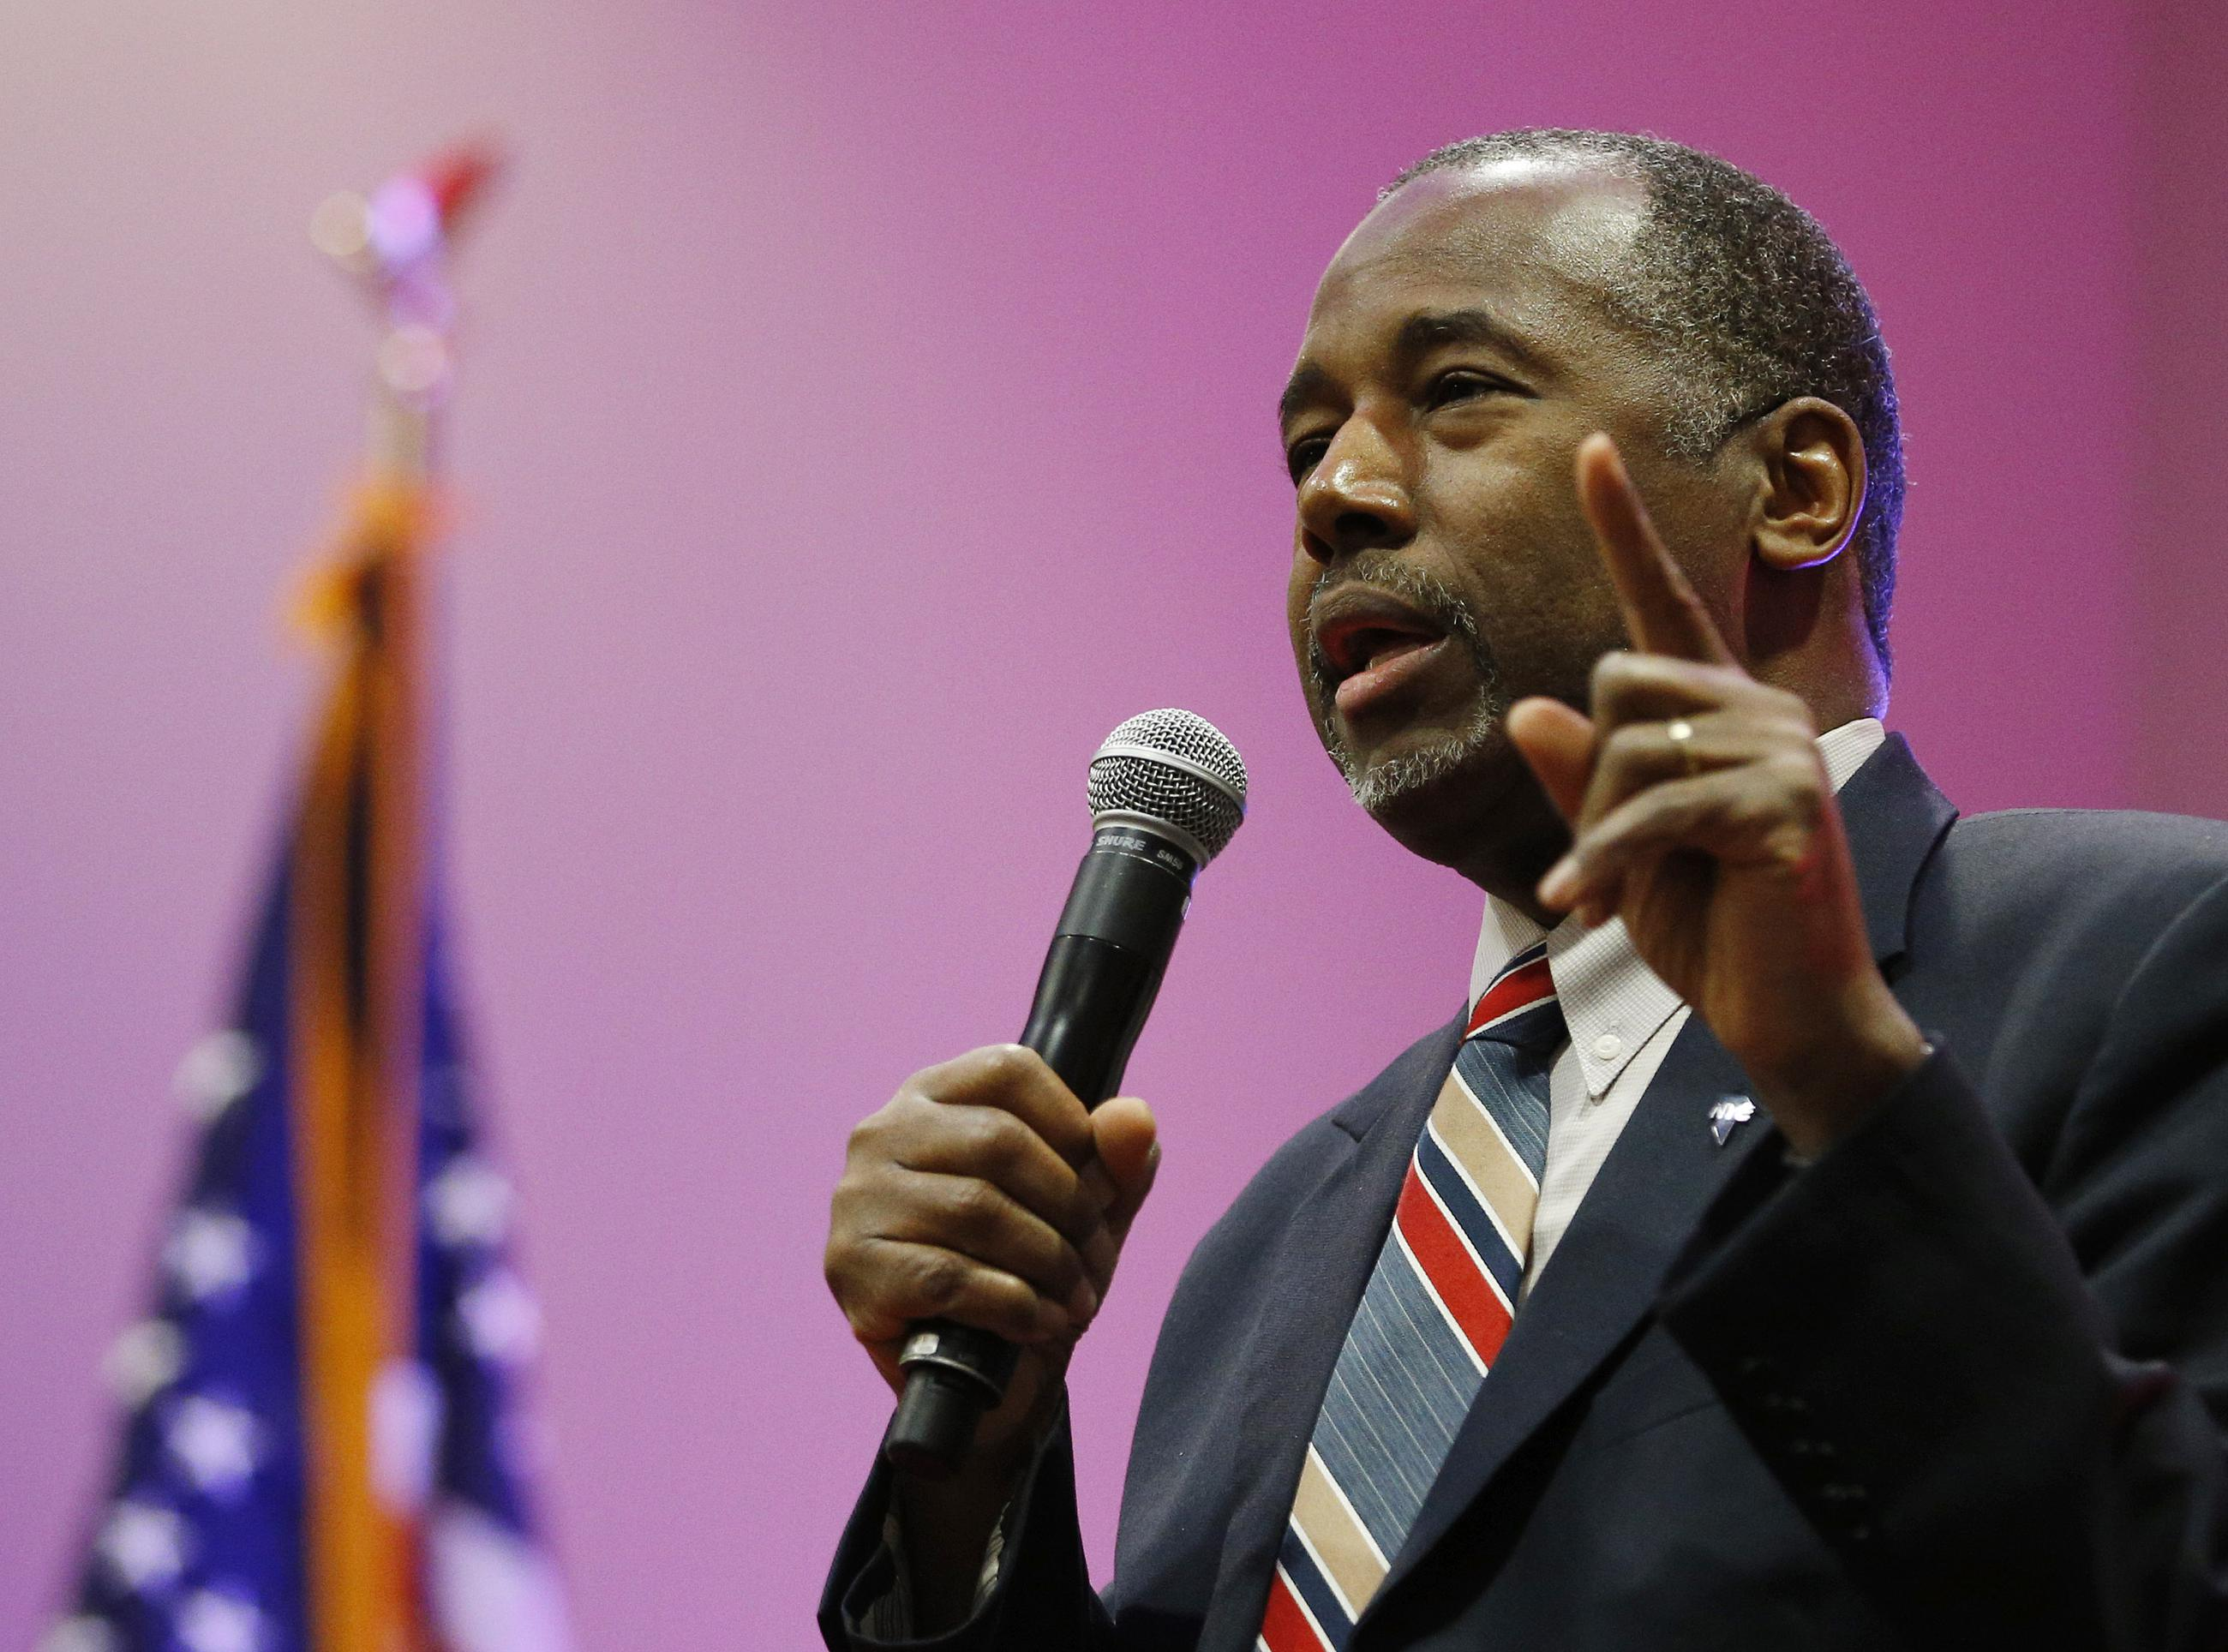 9 Times Ben Carson Didn't Care About Political Correctness